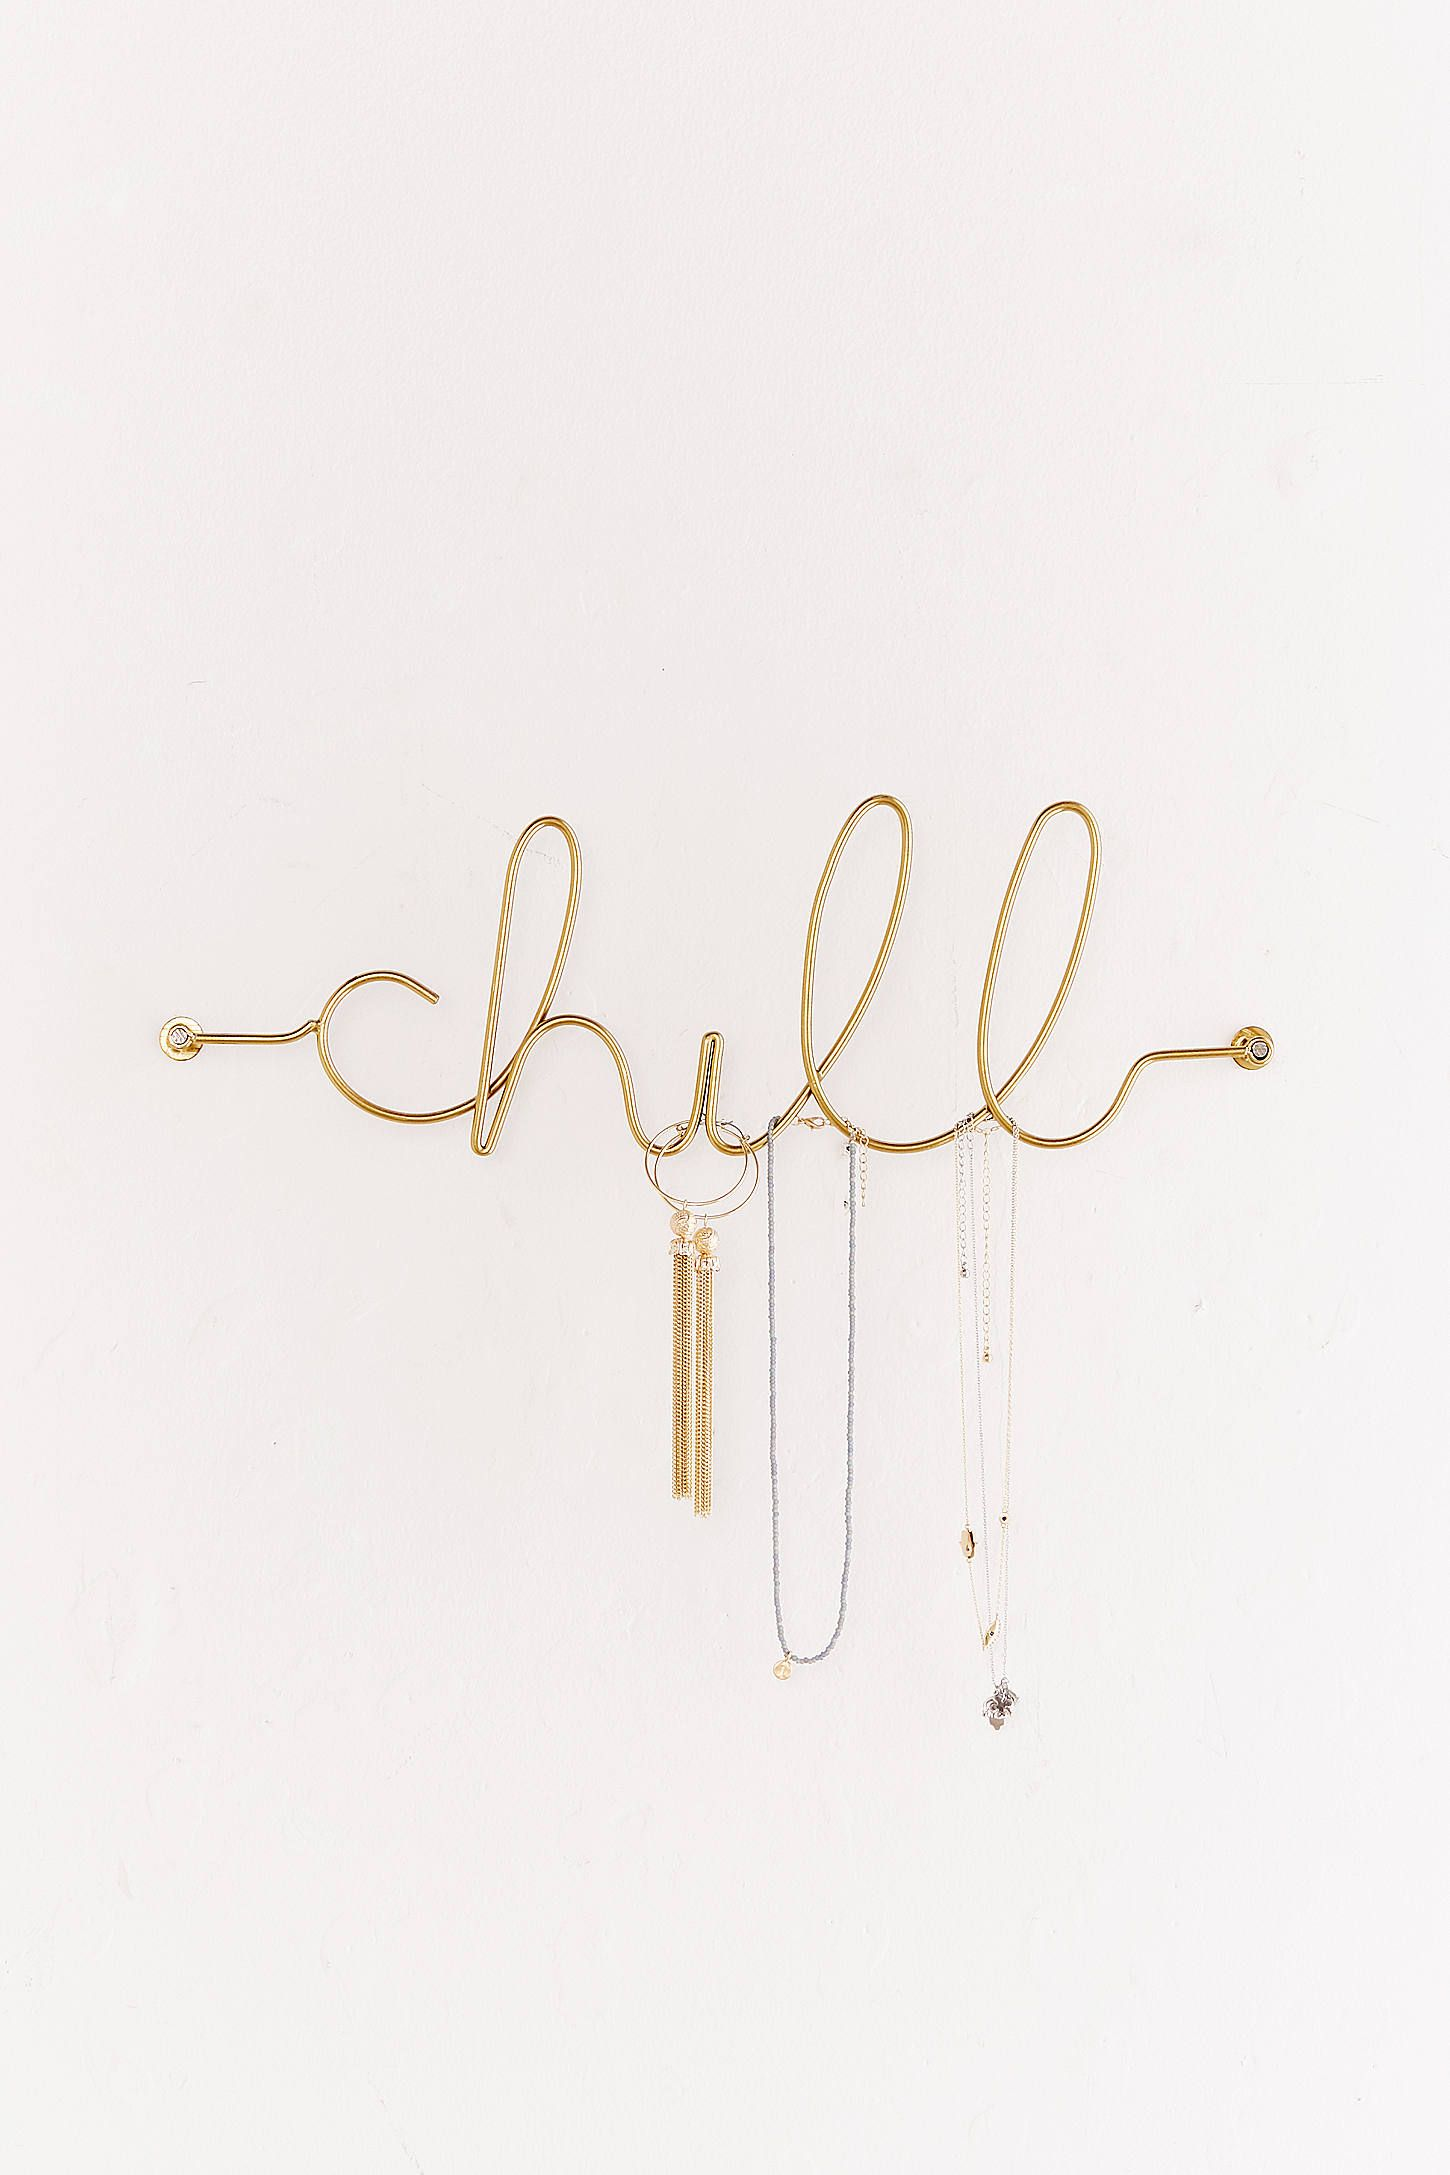 Chill Wall Hook Wall Hooks Urban Outfitters Home Cool Rooms